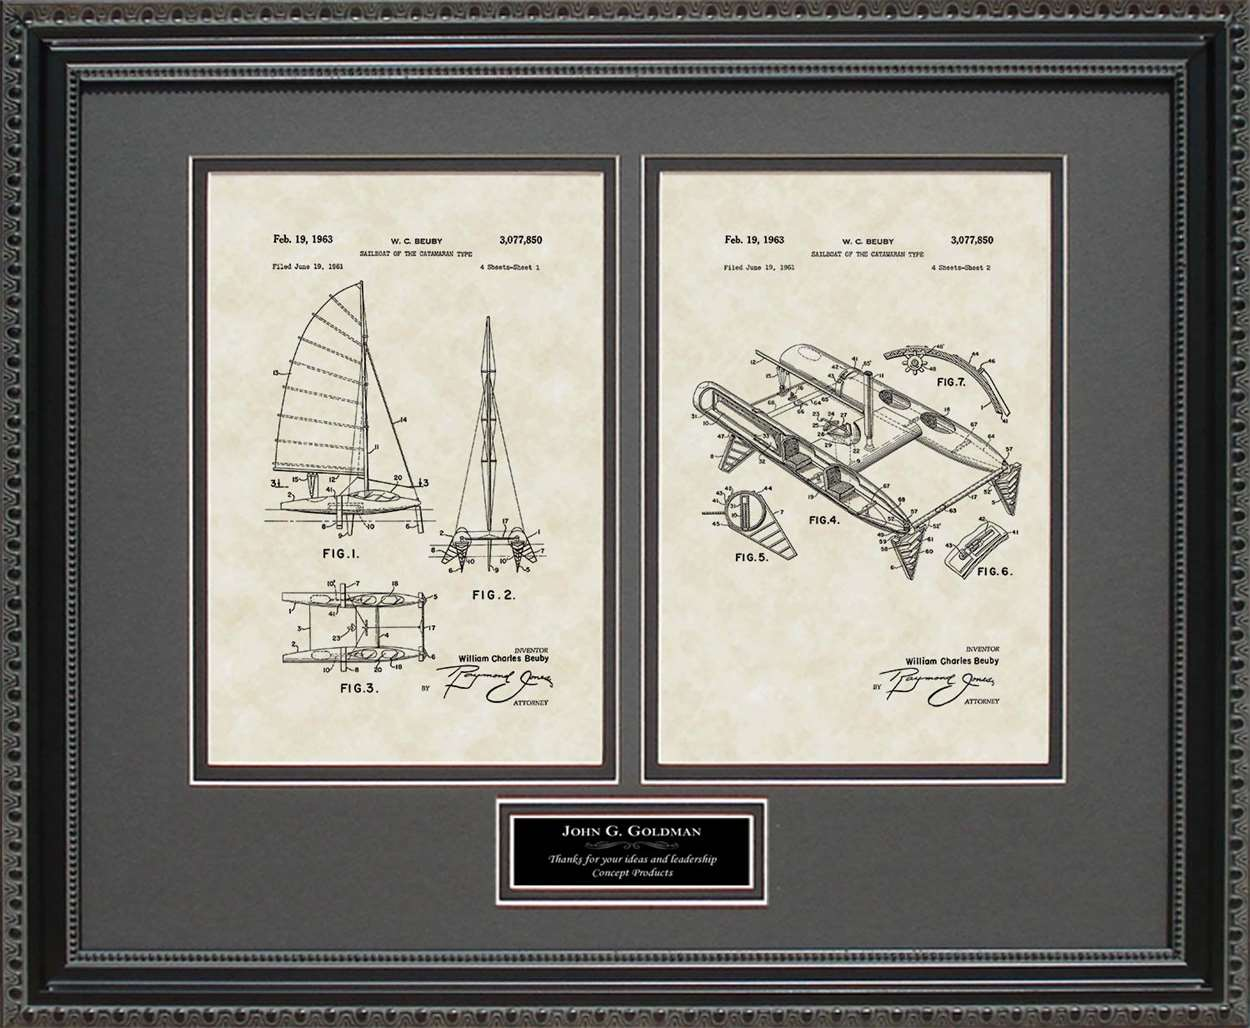 Personalized Catamaran Patent, 16x20